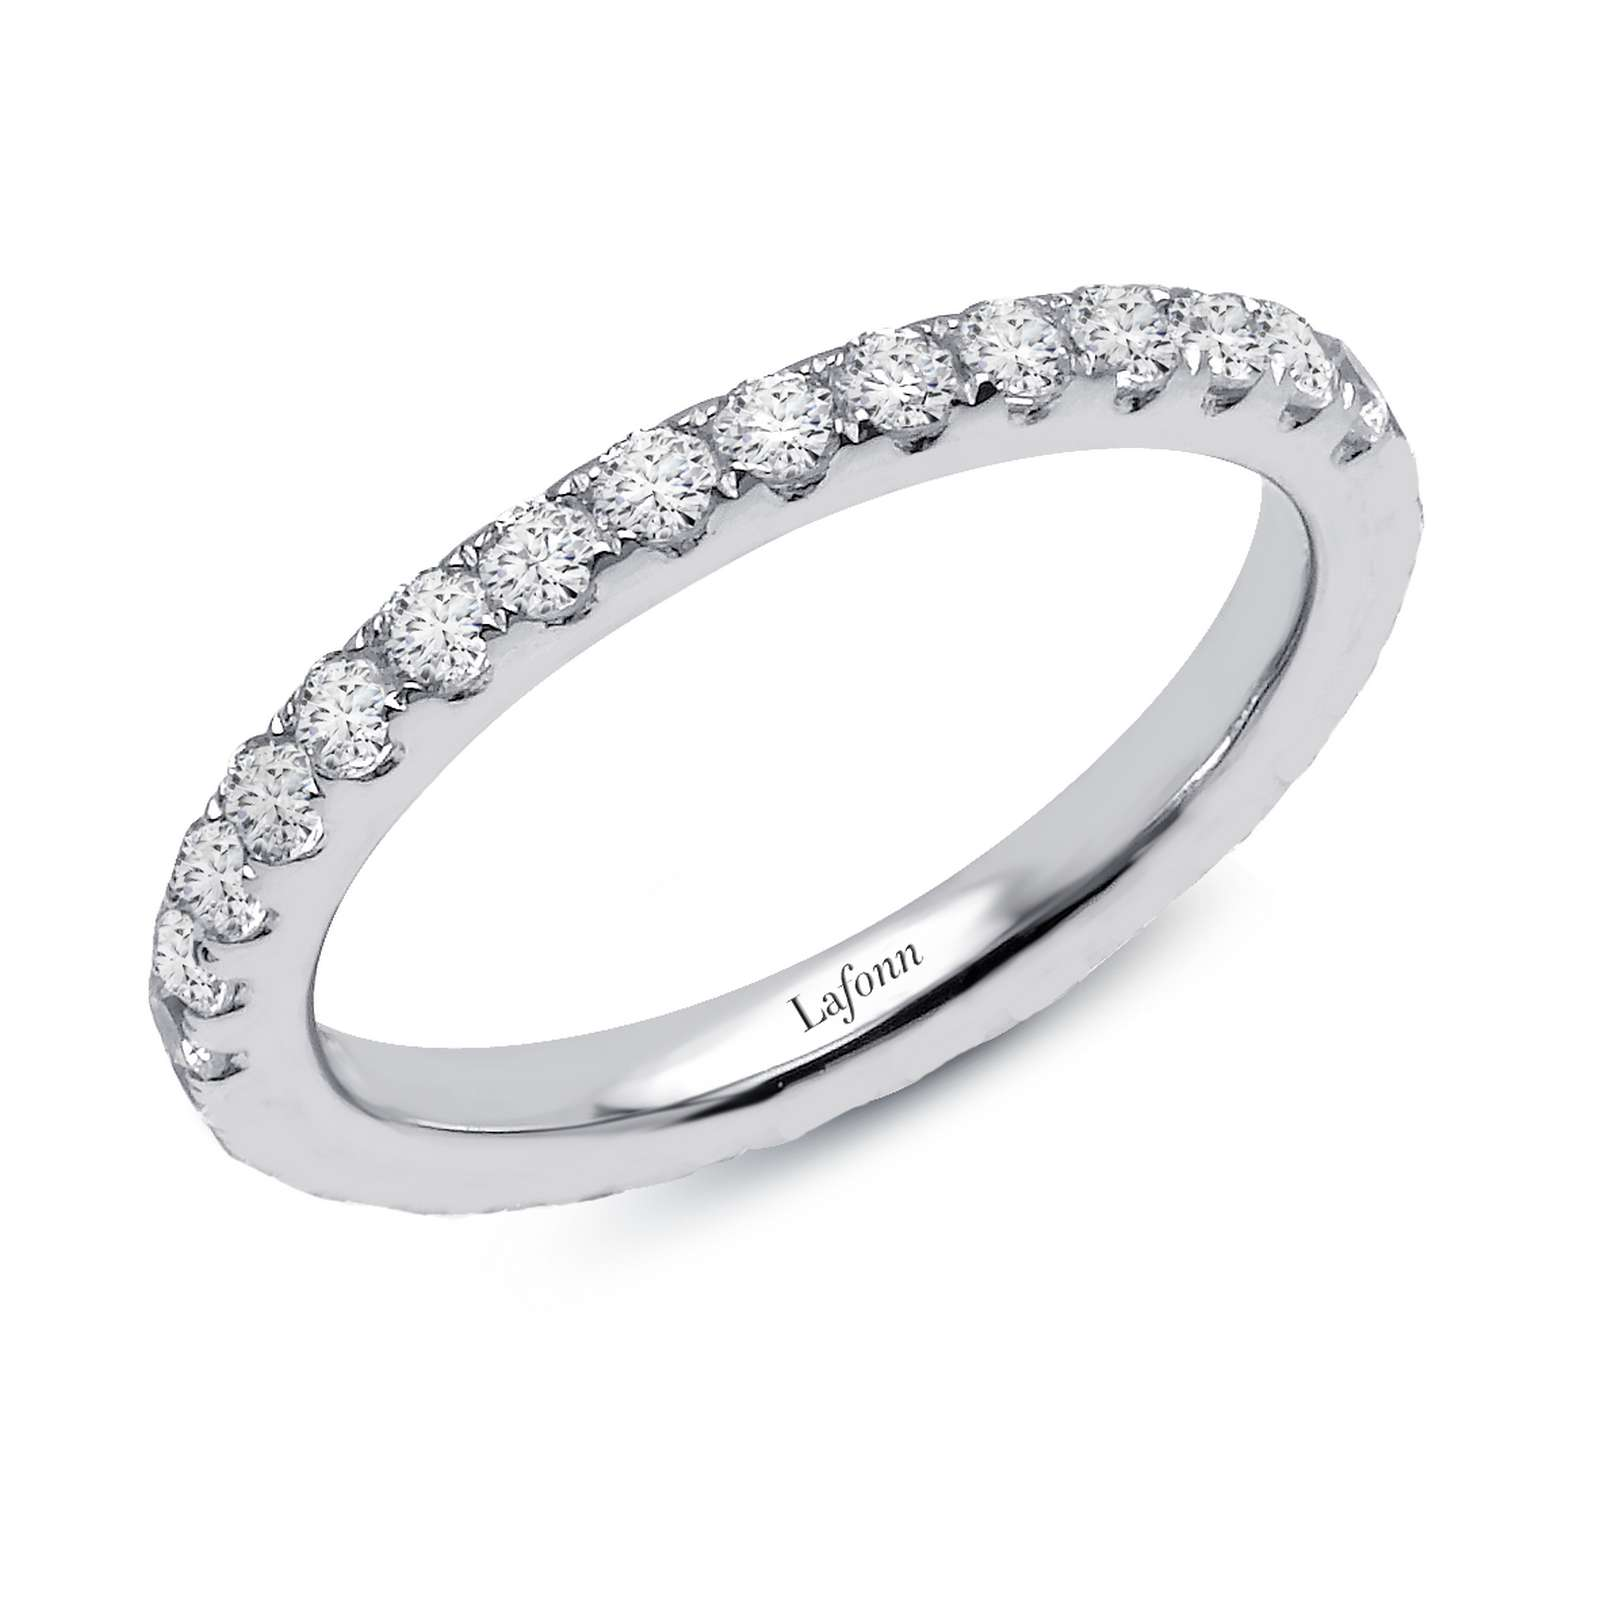 Stackables Platinum Ring by Lafonn